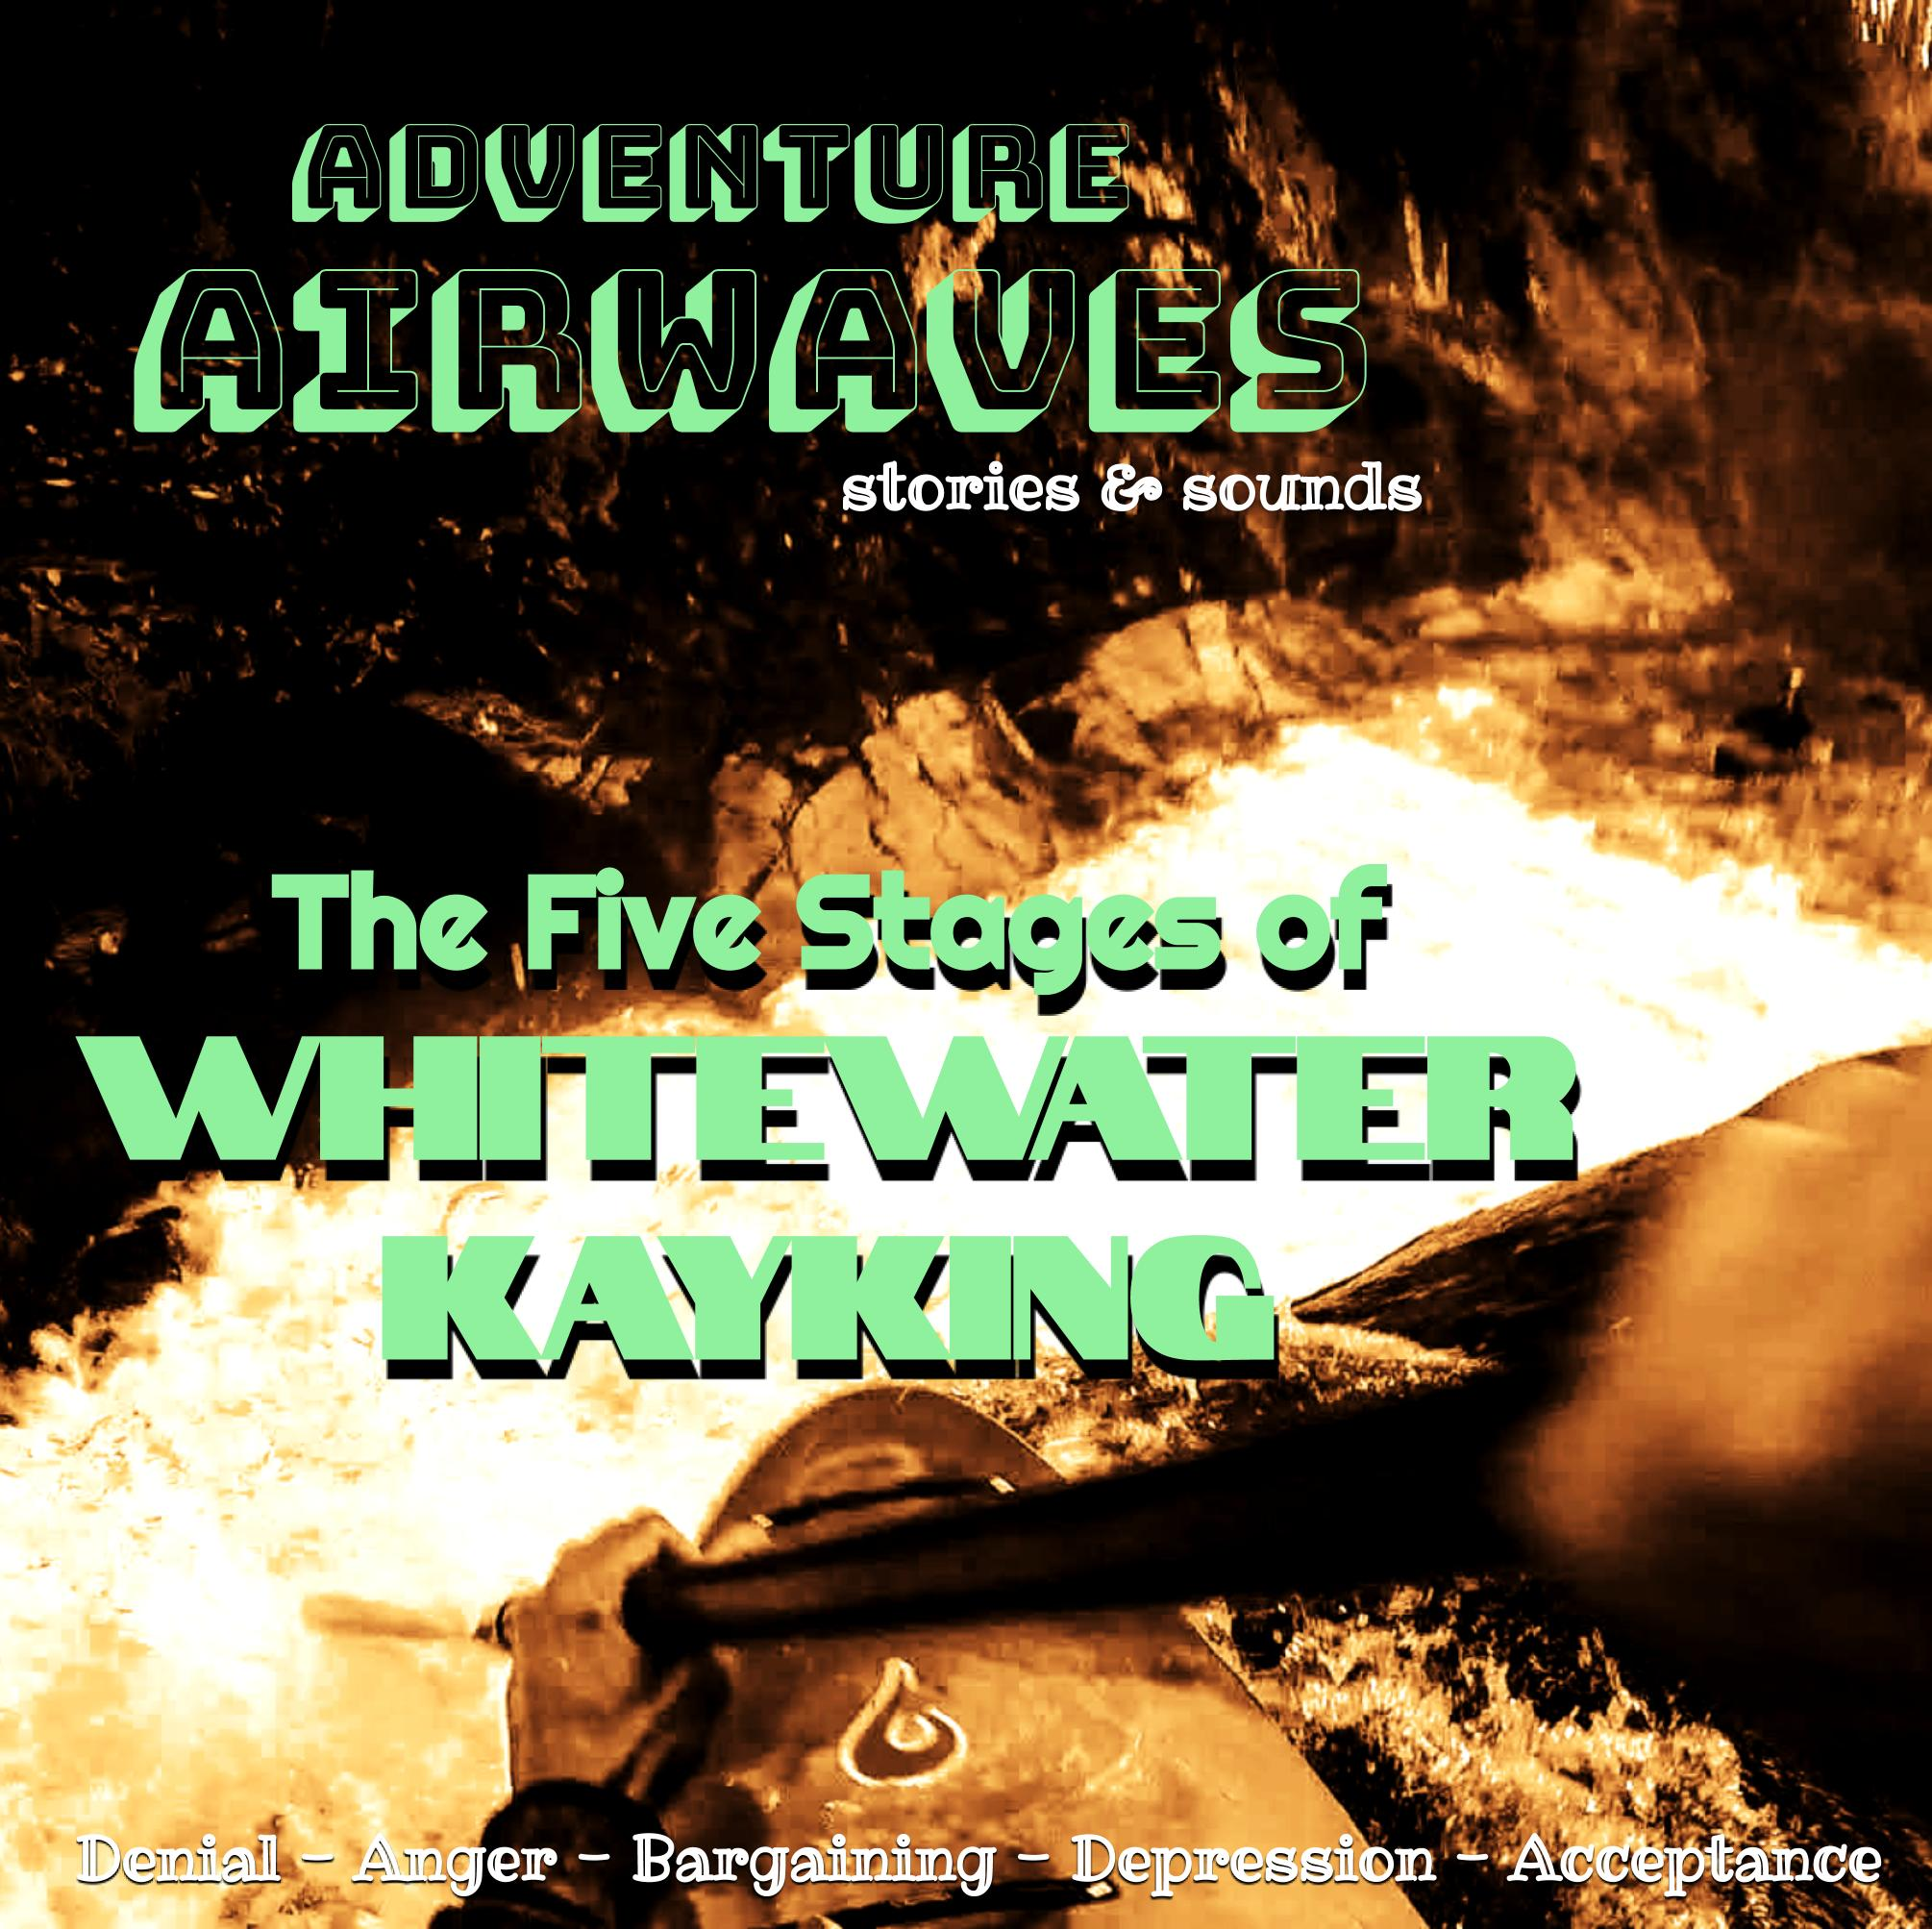 The Five Stages of Whitewater Kayaking